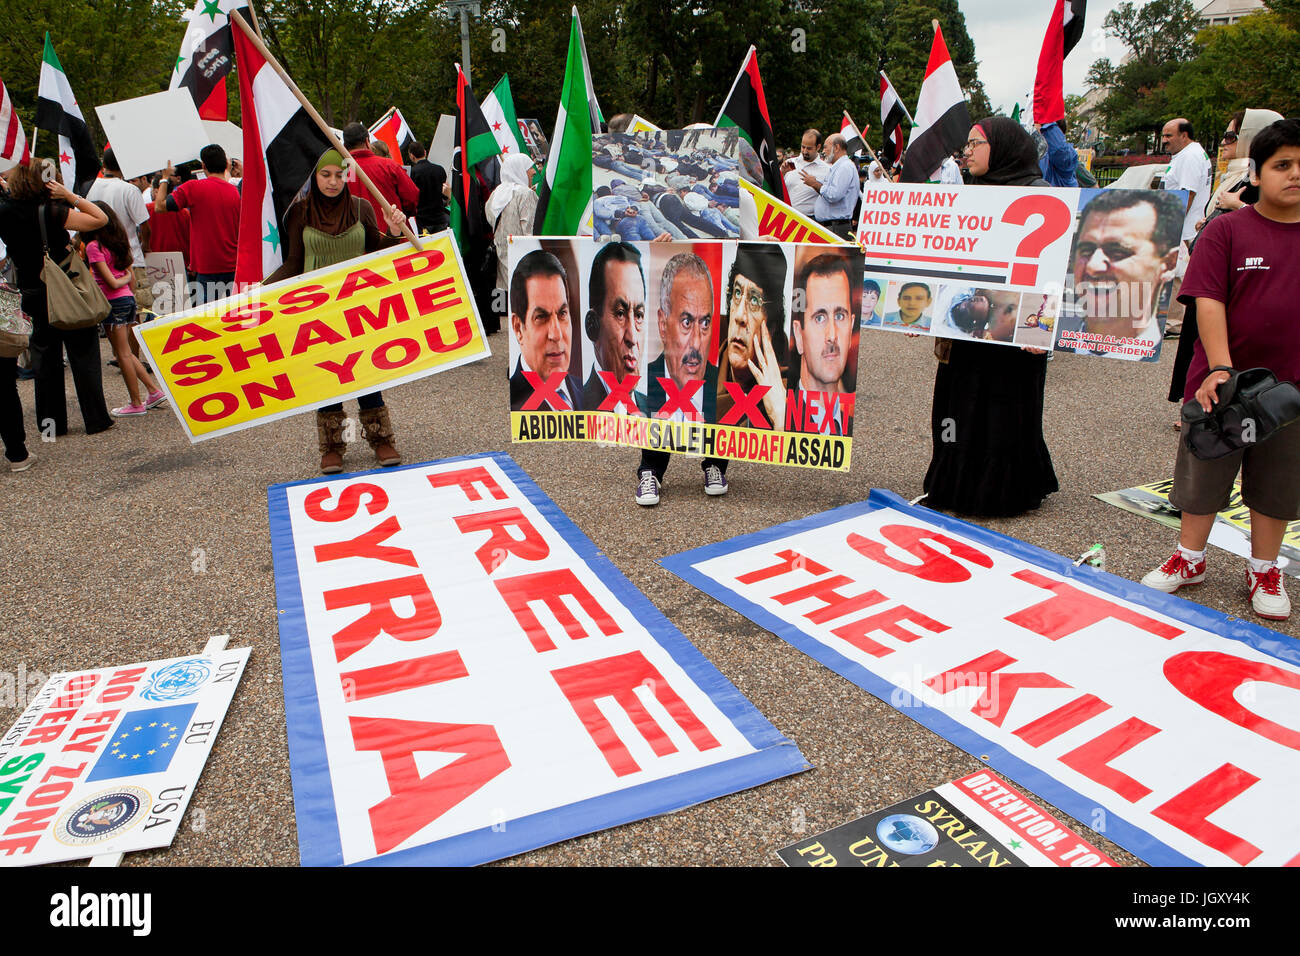 Washington, DC USA - 24th September, 2011: Syrian Americans protesting against Syrian president Bashar al-Assad - Stock Image